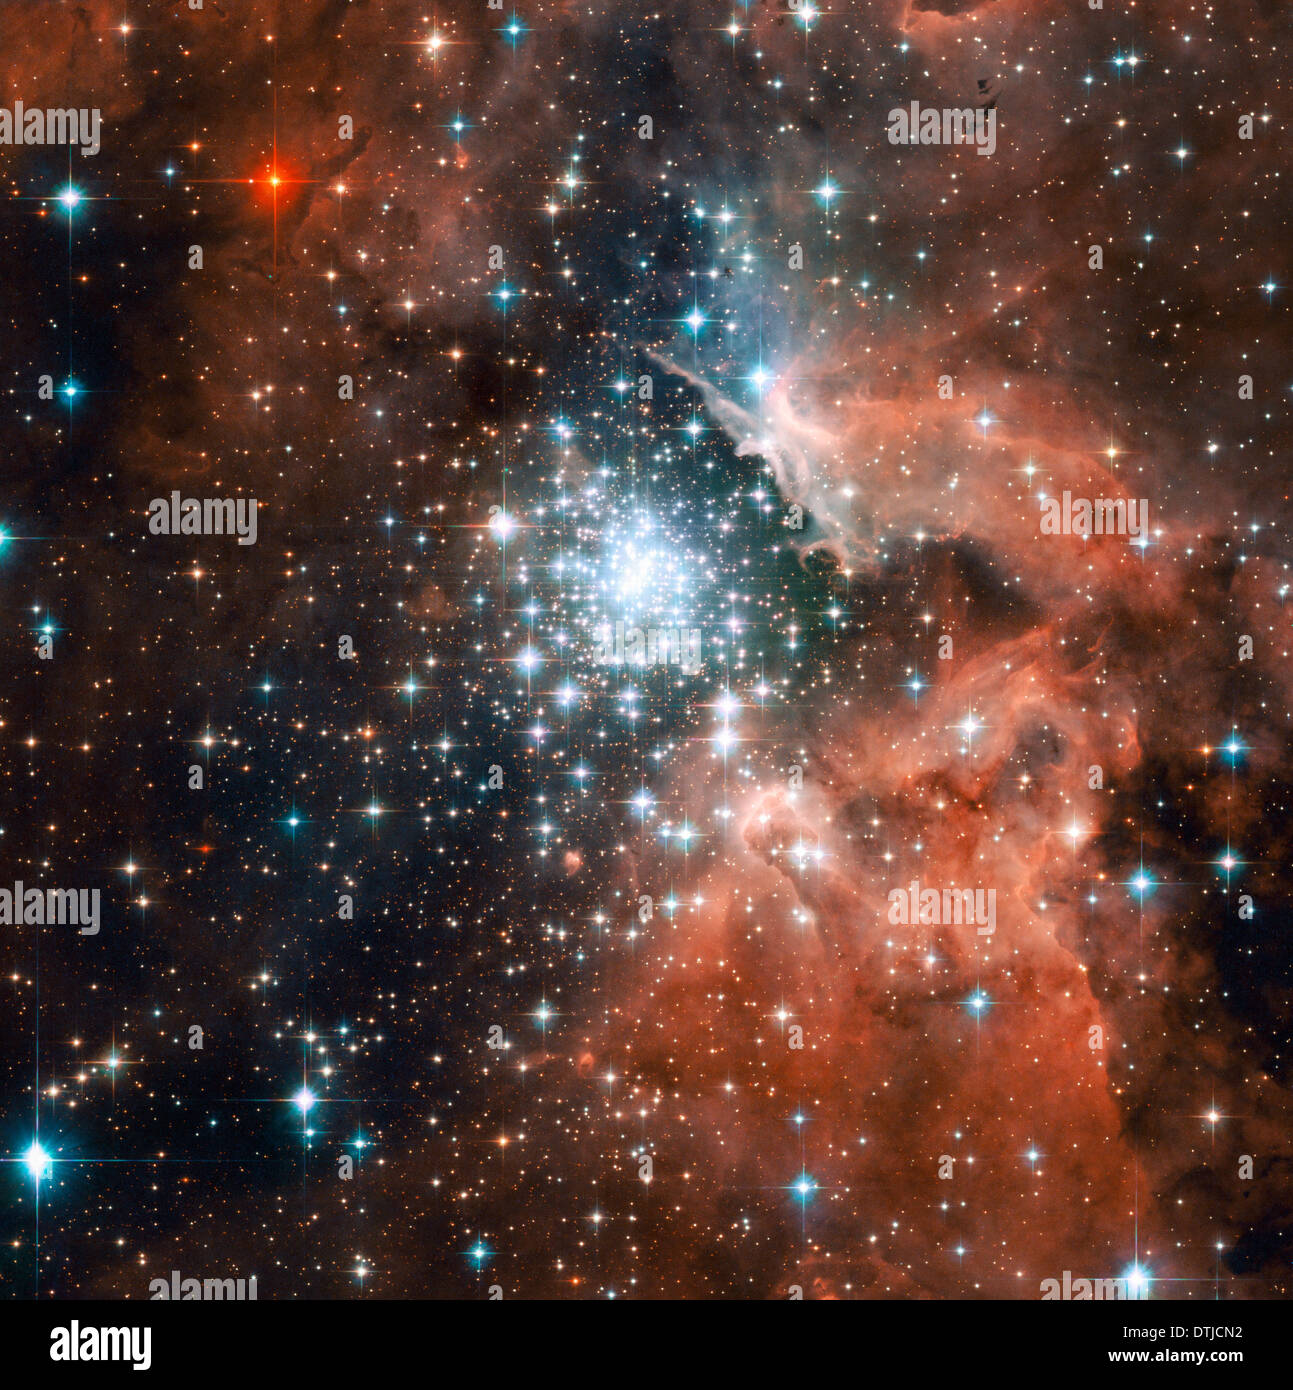 Hubble Telescope view of star-forming region NGC 3603 in the Milky Way. - Stock Image